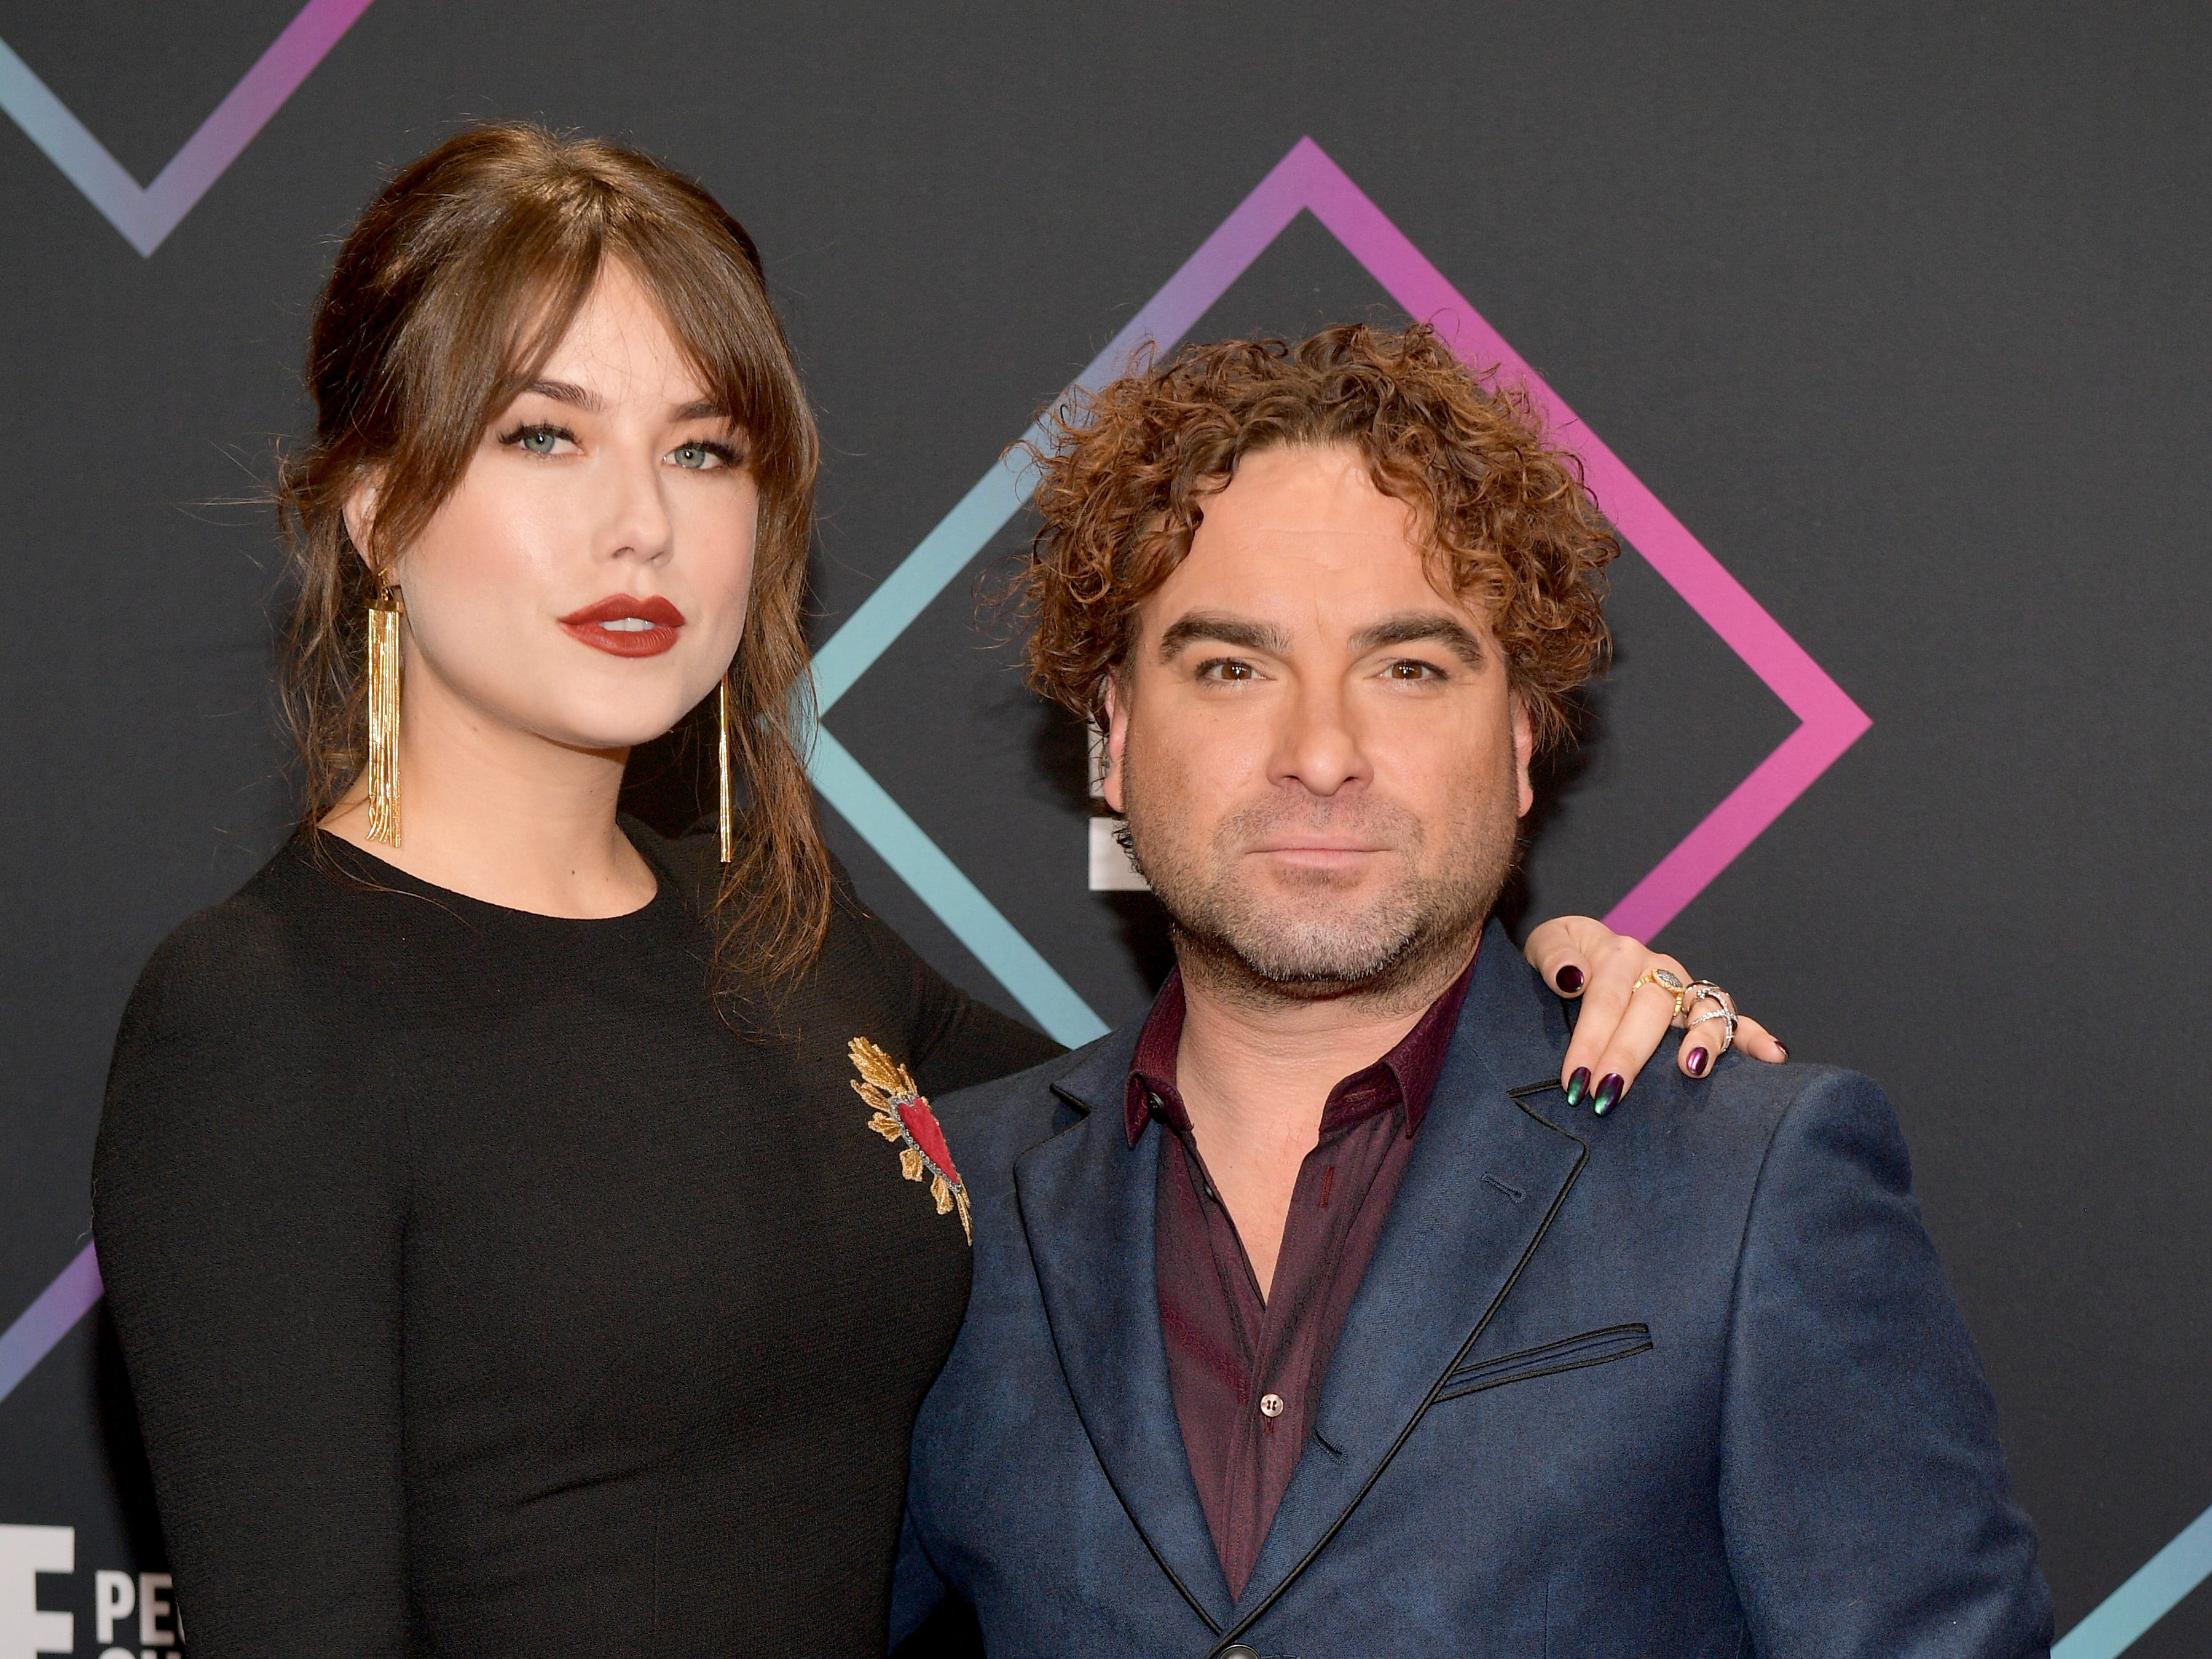 'Big Bang' star Johnny Galecki walks the People's Choice red carpet with 21-year-old girlfriend